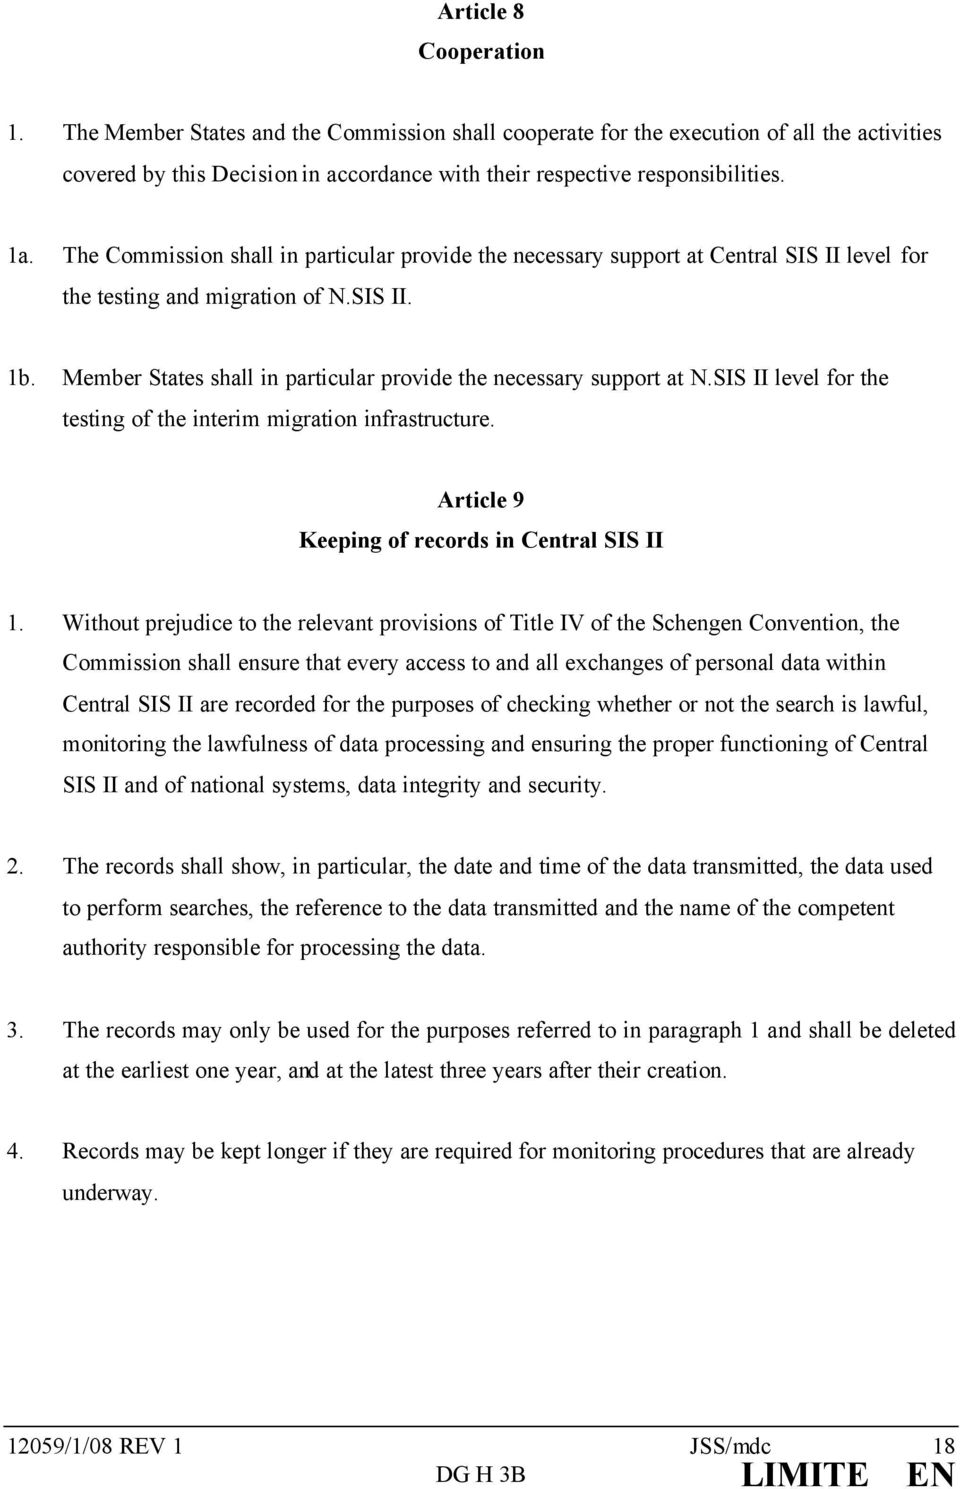 Member States shall in particular provide the necessary support at N.SIS II level for the testing of the interim migration infrastructure. Article 9 Keeping of records in Central SIS II 1.